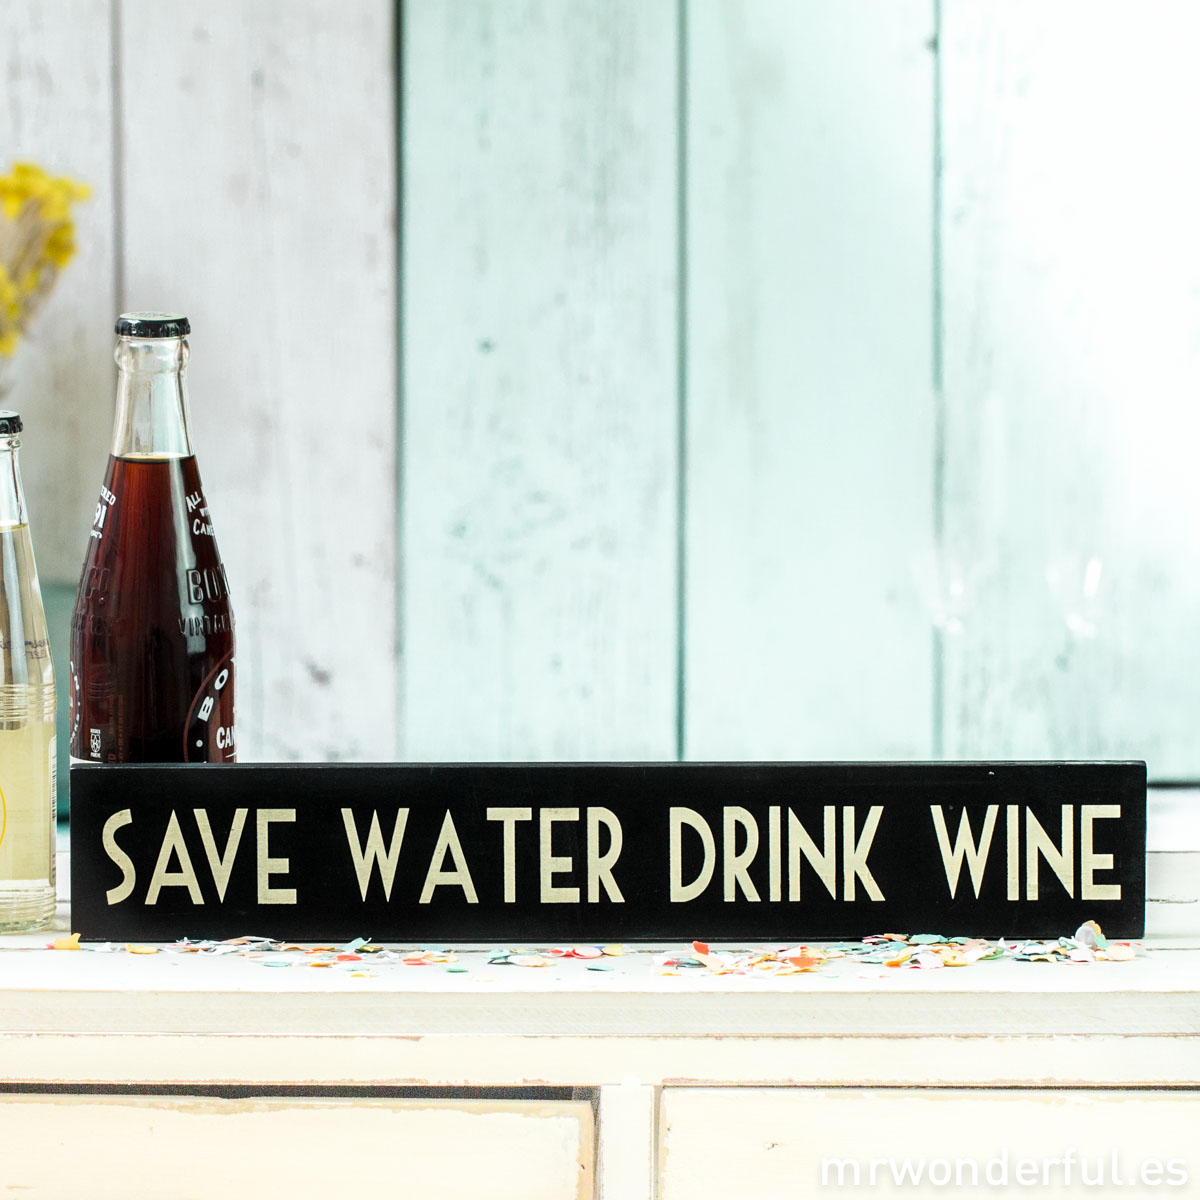 mrwonderful_854_letrero-madera_save-water_drink-wine-4